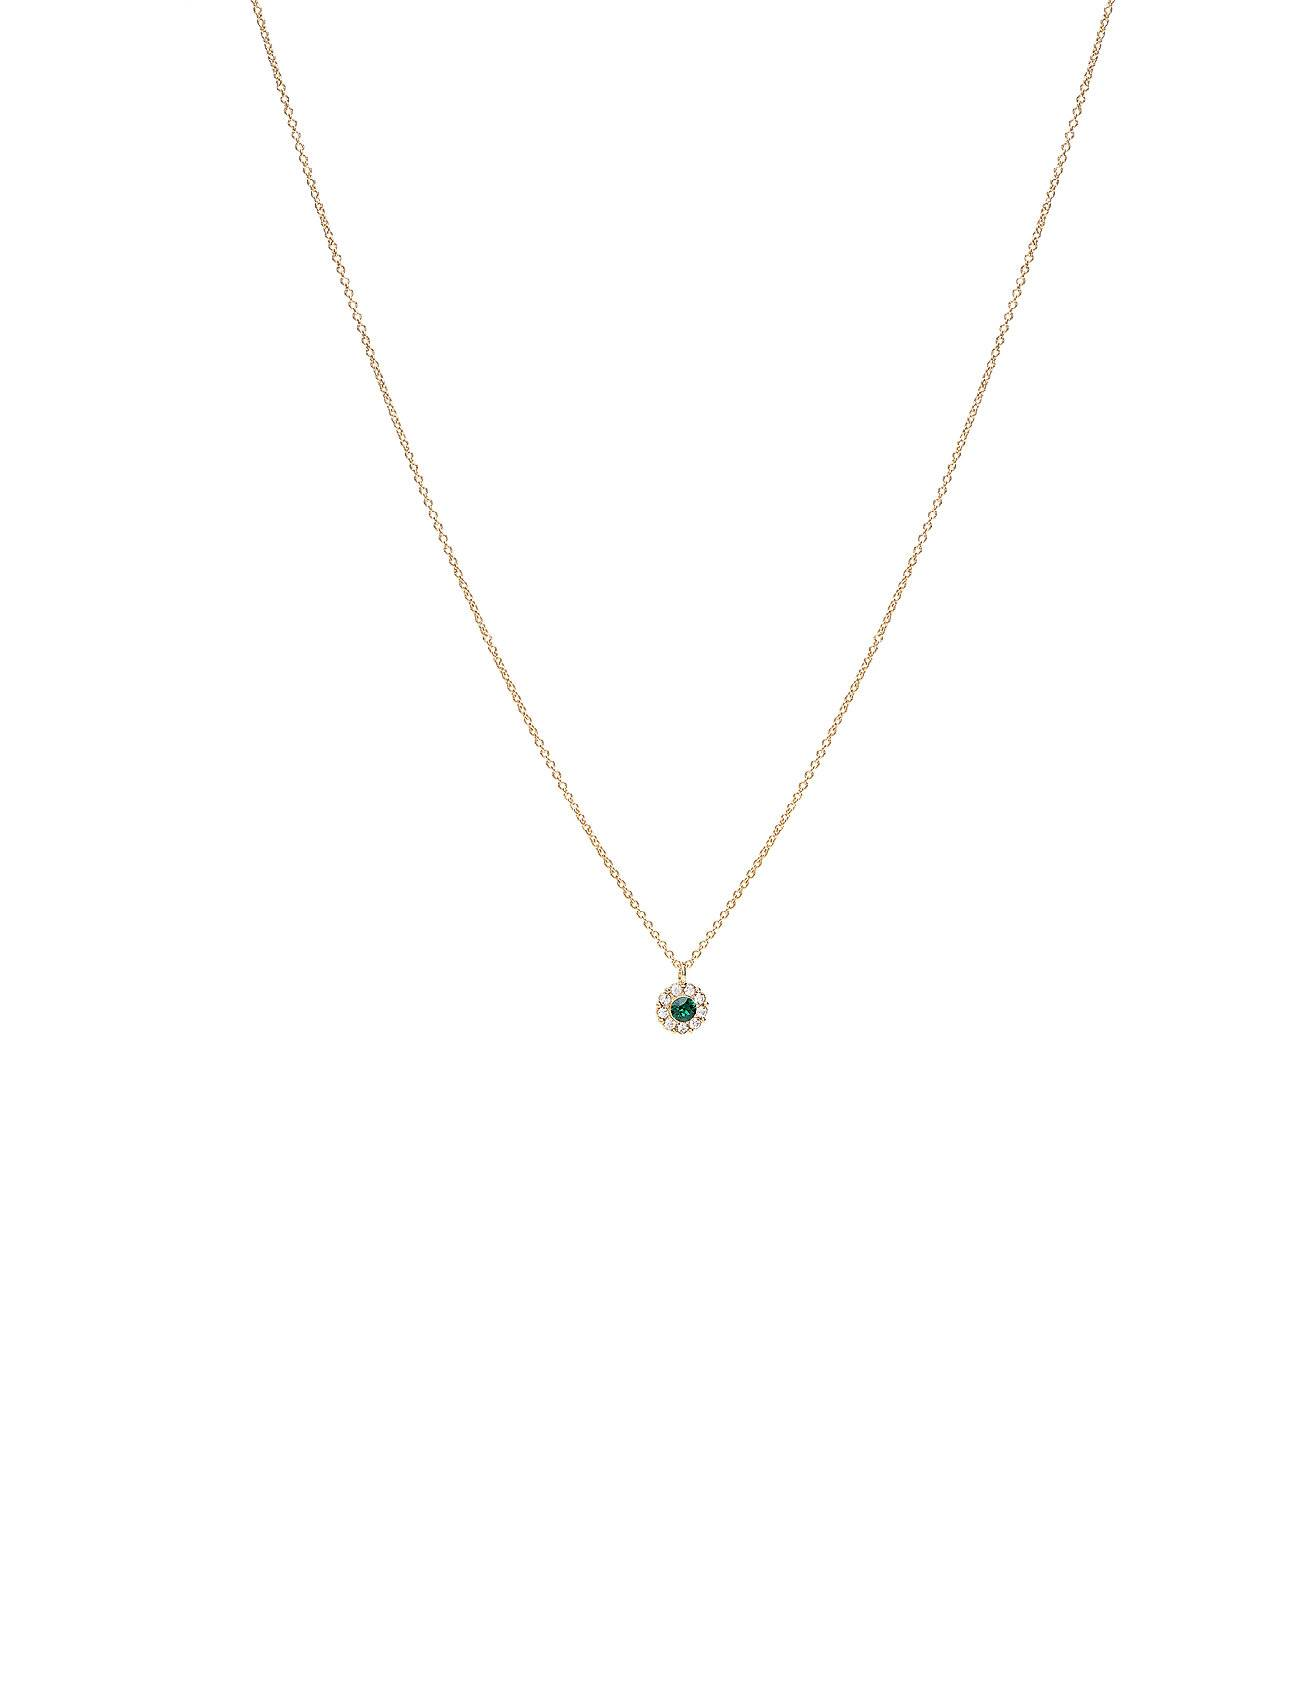 LILY AND ROSE Petite Miss Sofia Necklace - Emerald Accessories Jewellery Necklaces Dainty Necklaces Vihreä LILY AND ROSE